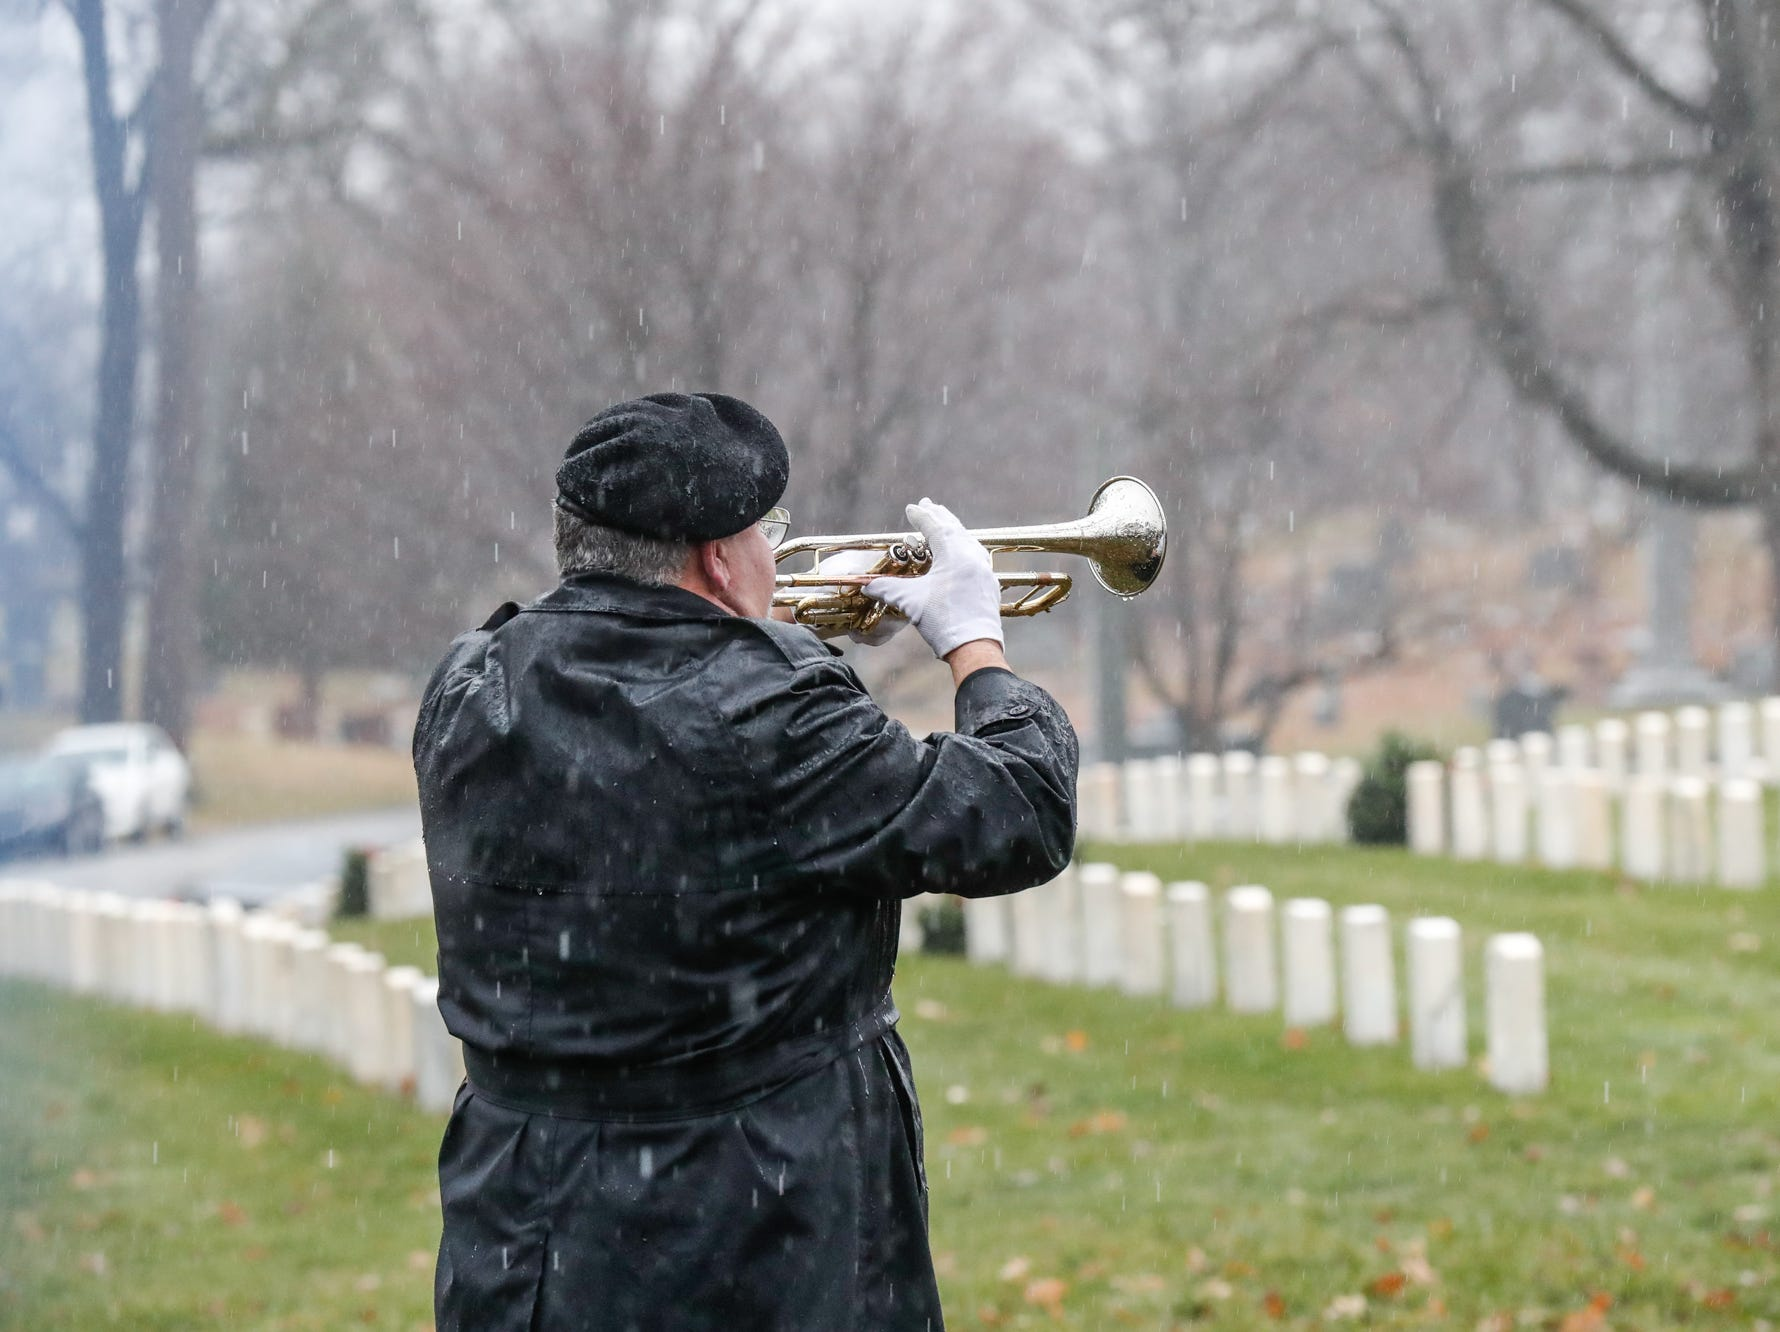 Military veteran Bruce McKee plays Taps during the Wreaths Across America wreath laying in remembrance of fallen military heroes at Crown Hill Cemetery on Saturday, Dec. 2018.